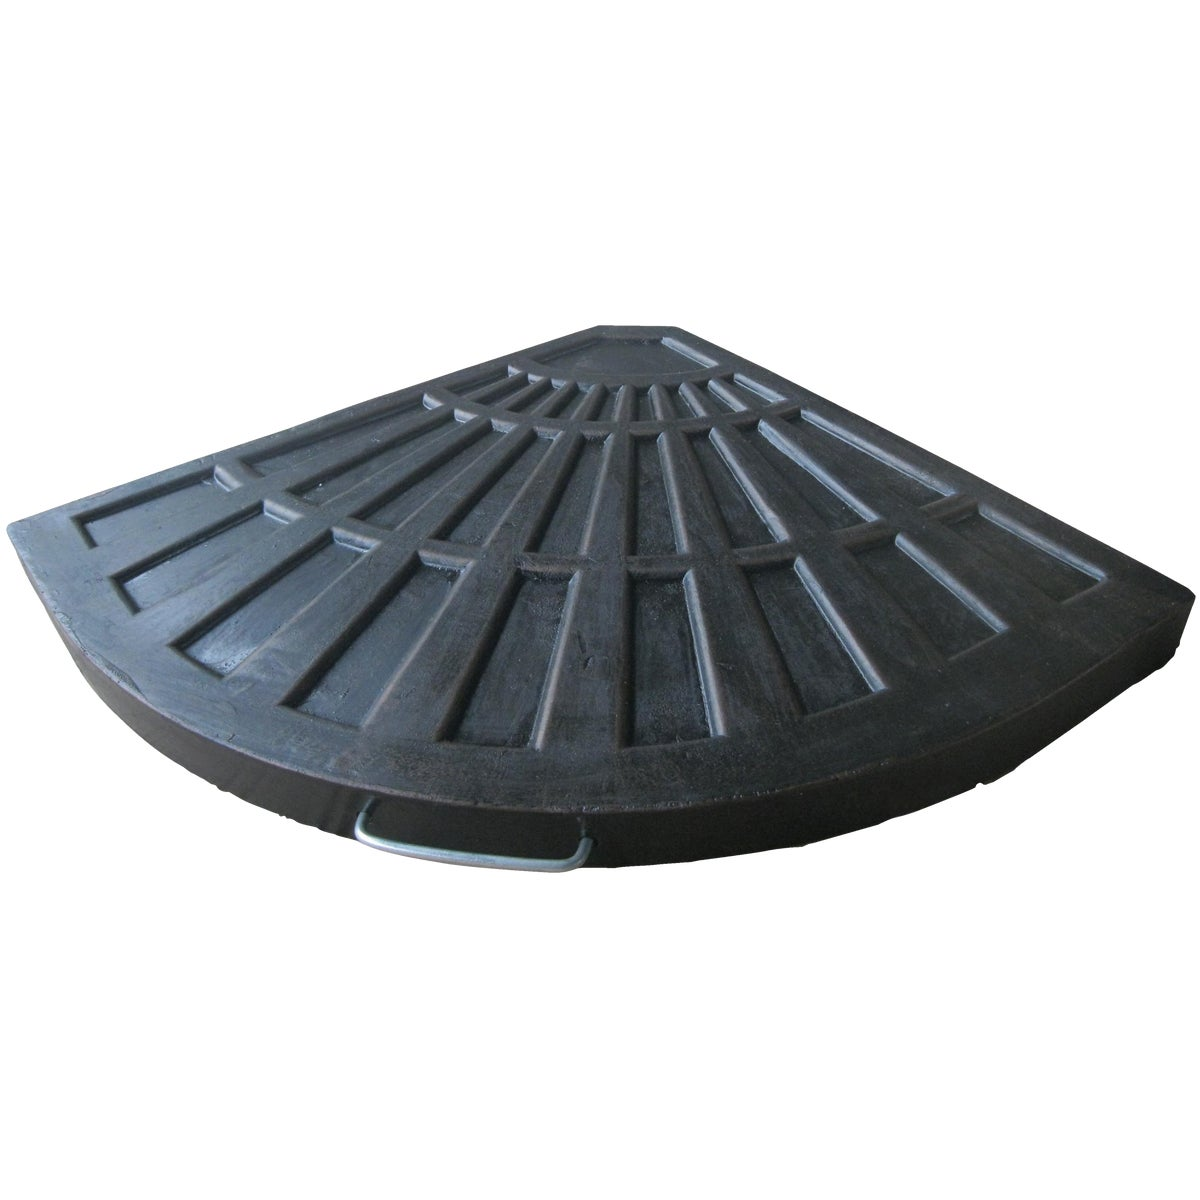 BRNZ OFFST UMBRELLA BASE